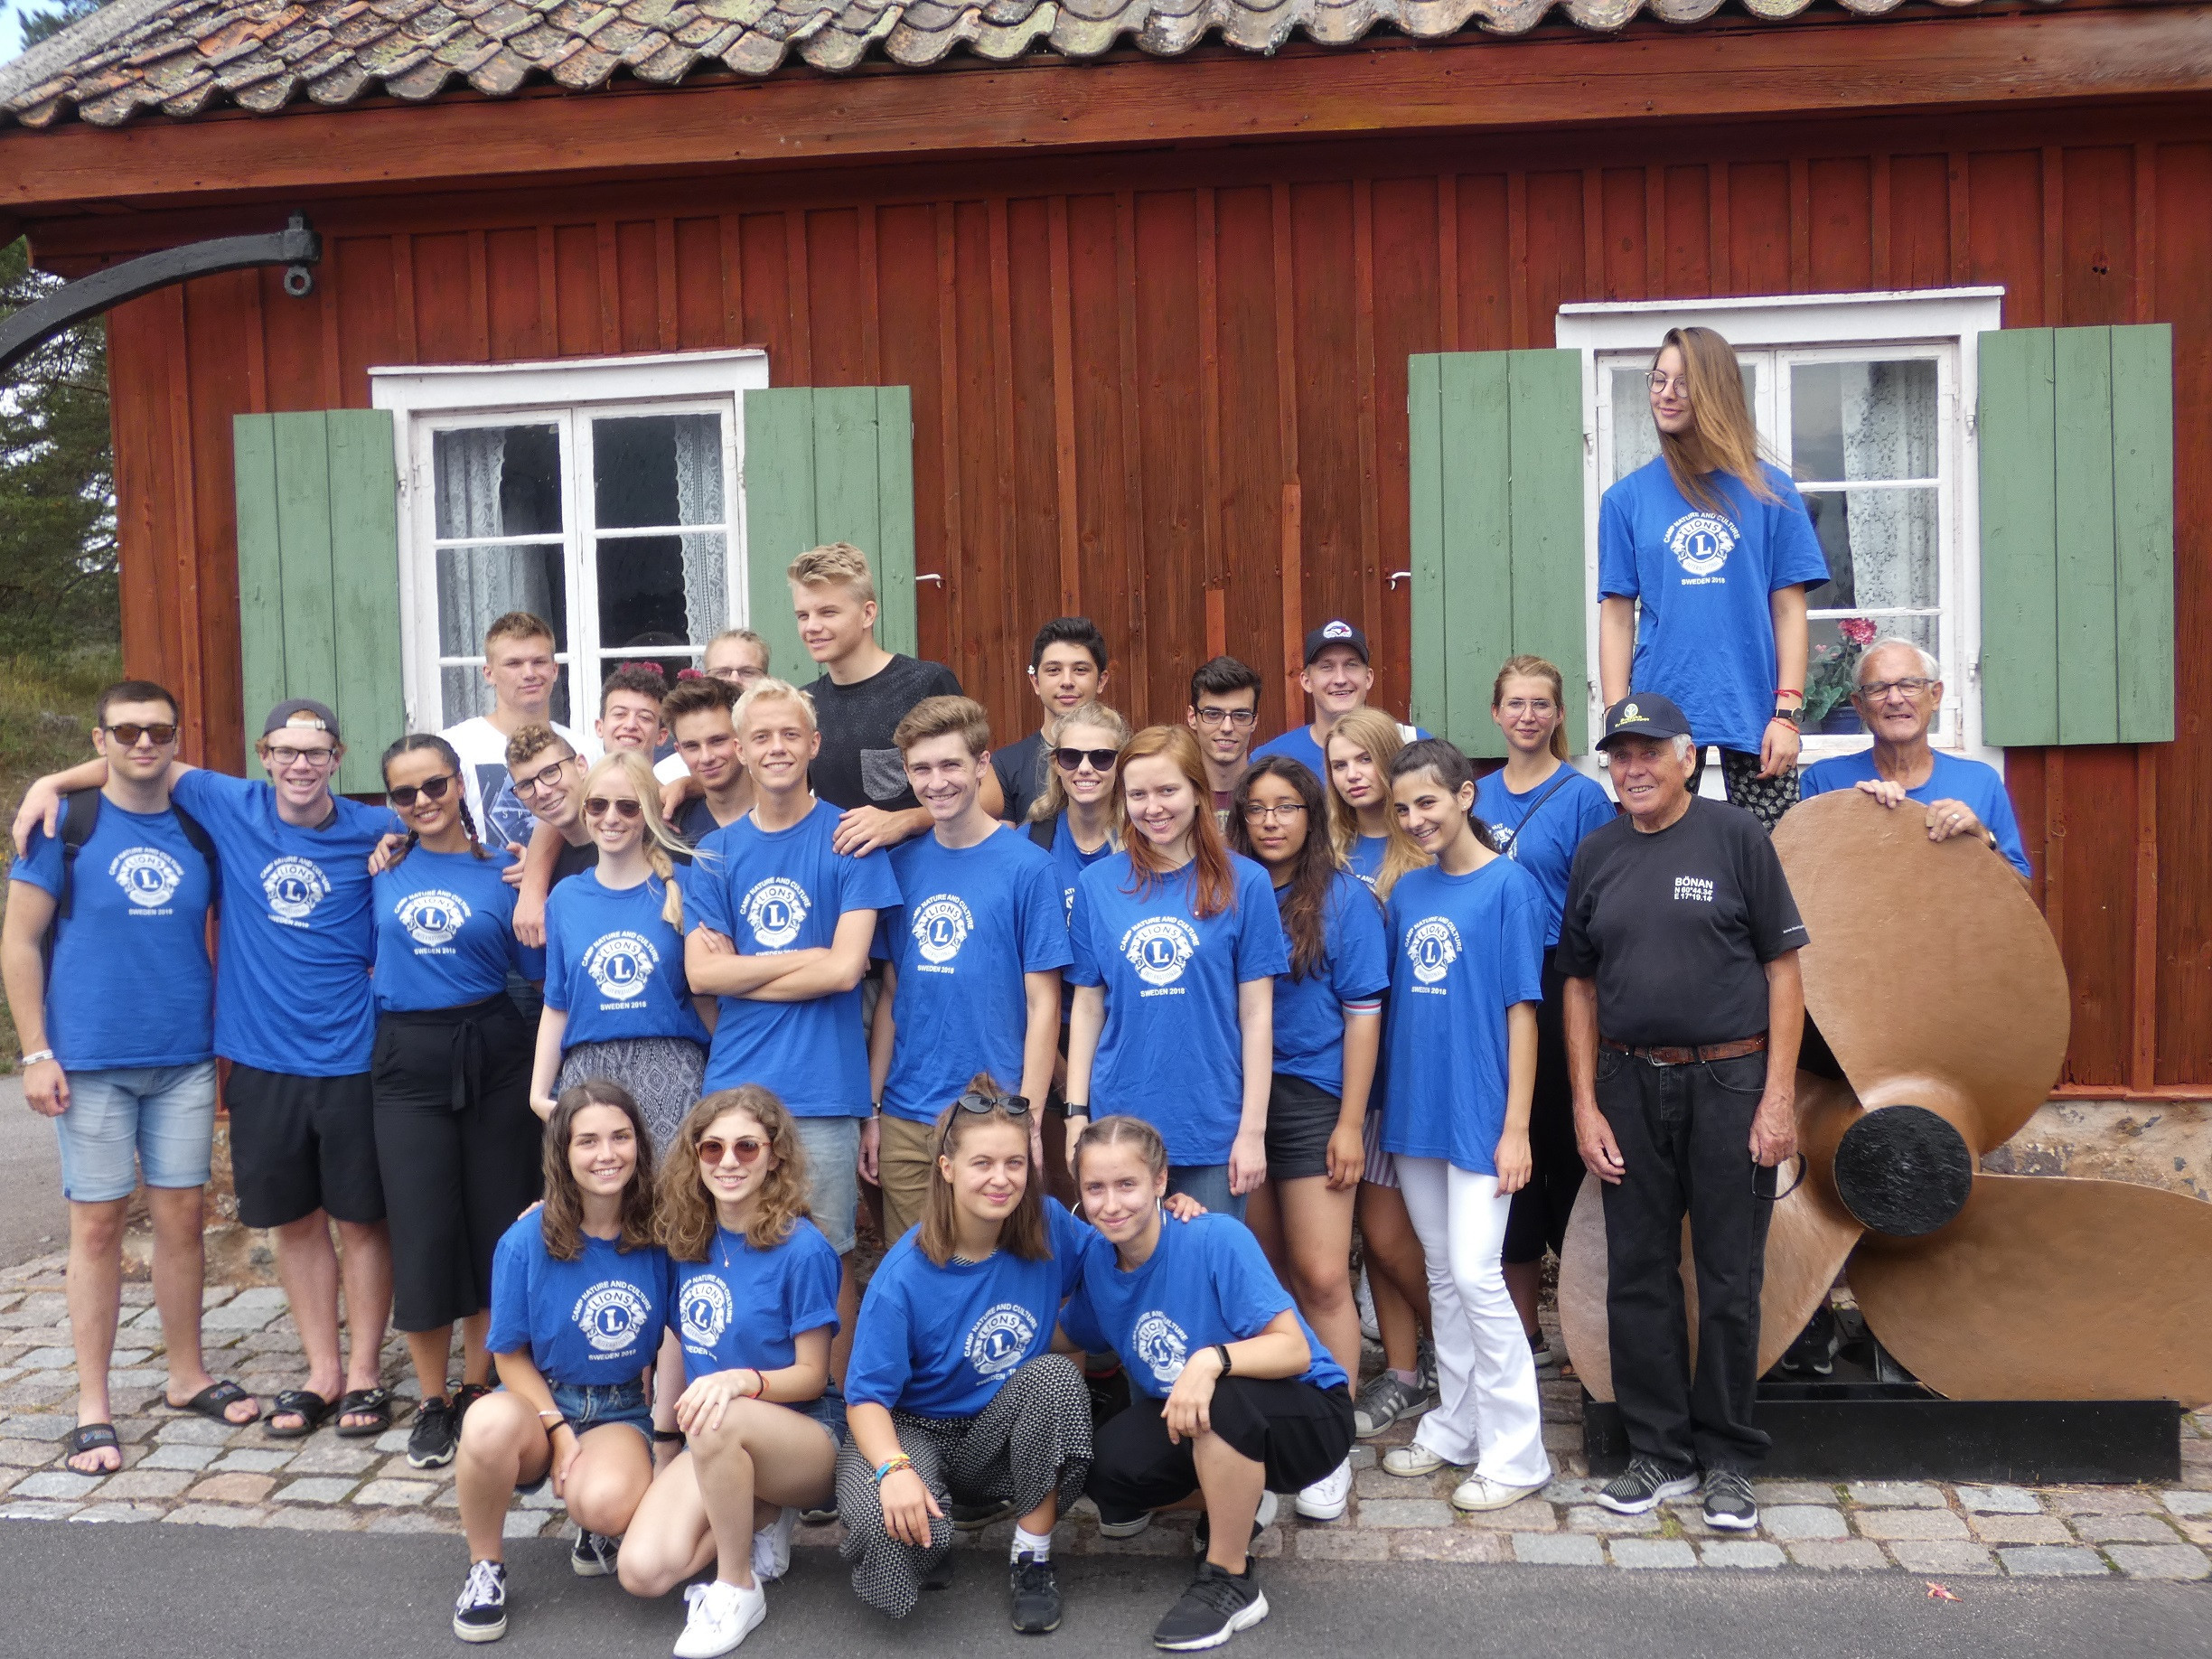 Lions arrange camp for youth from all over Europe in Högbo